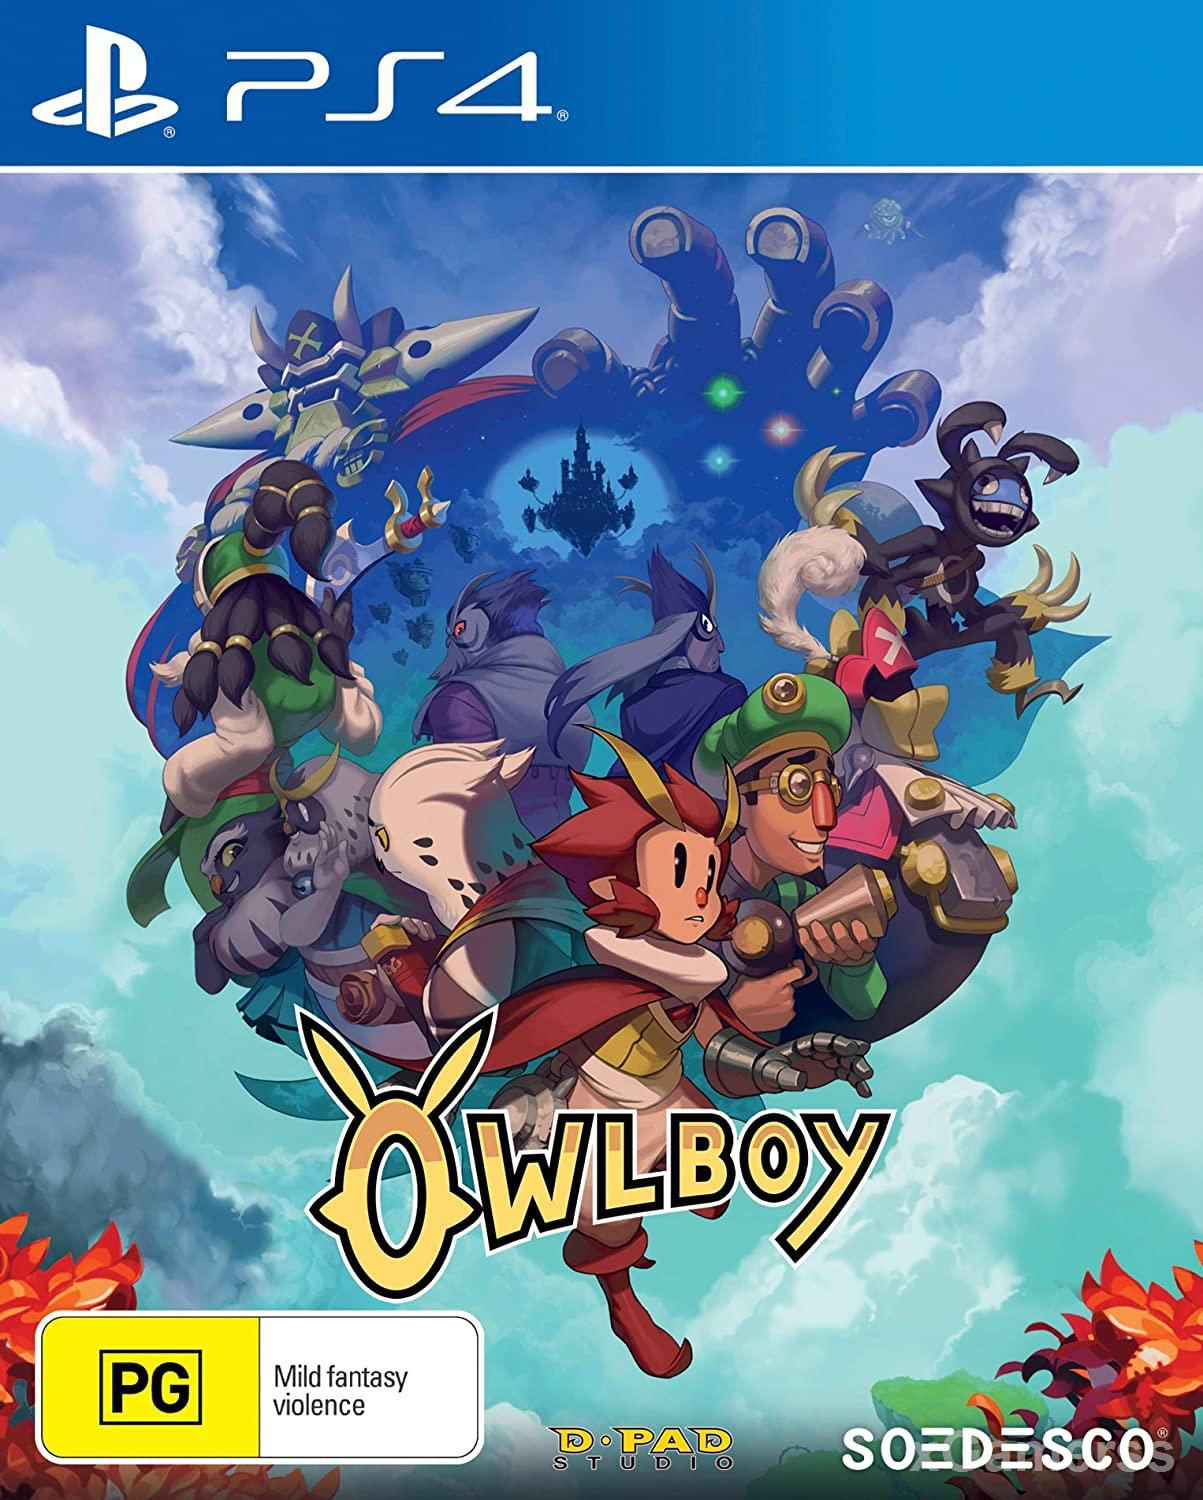 Owlboy - you will be a hybrid that is composed of half-human, and half owl